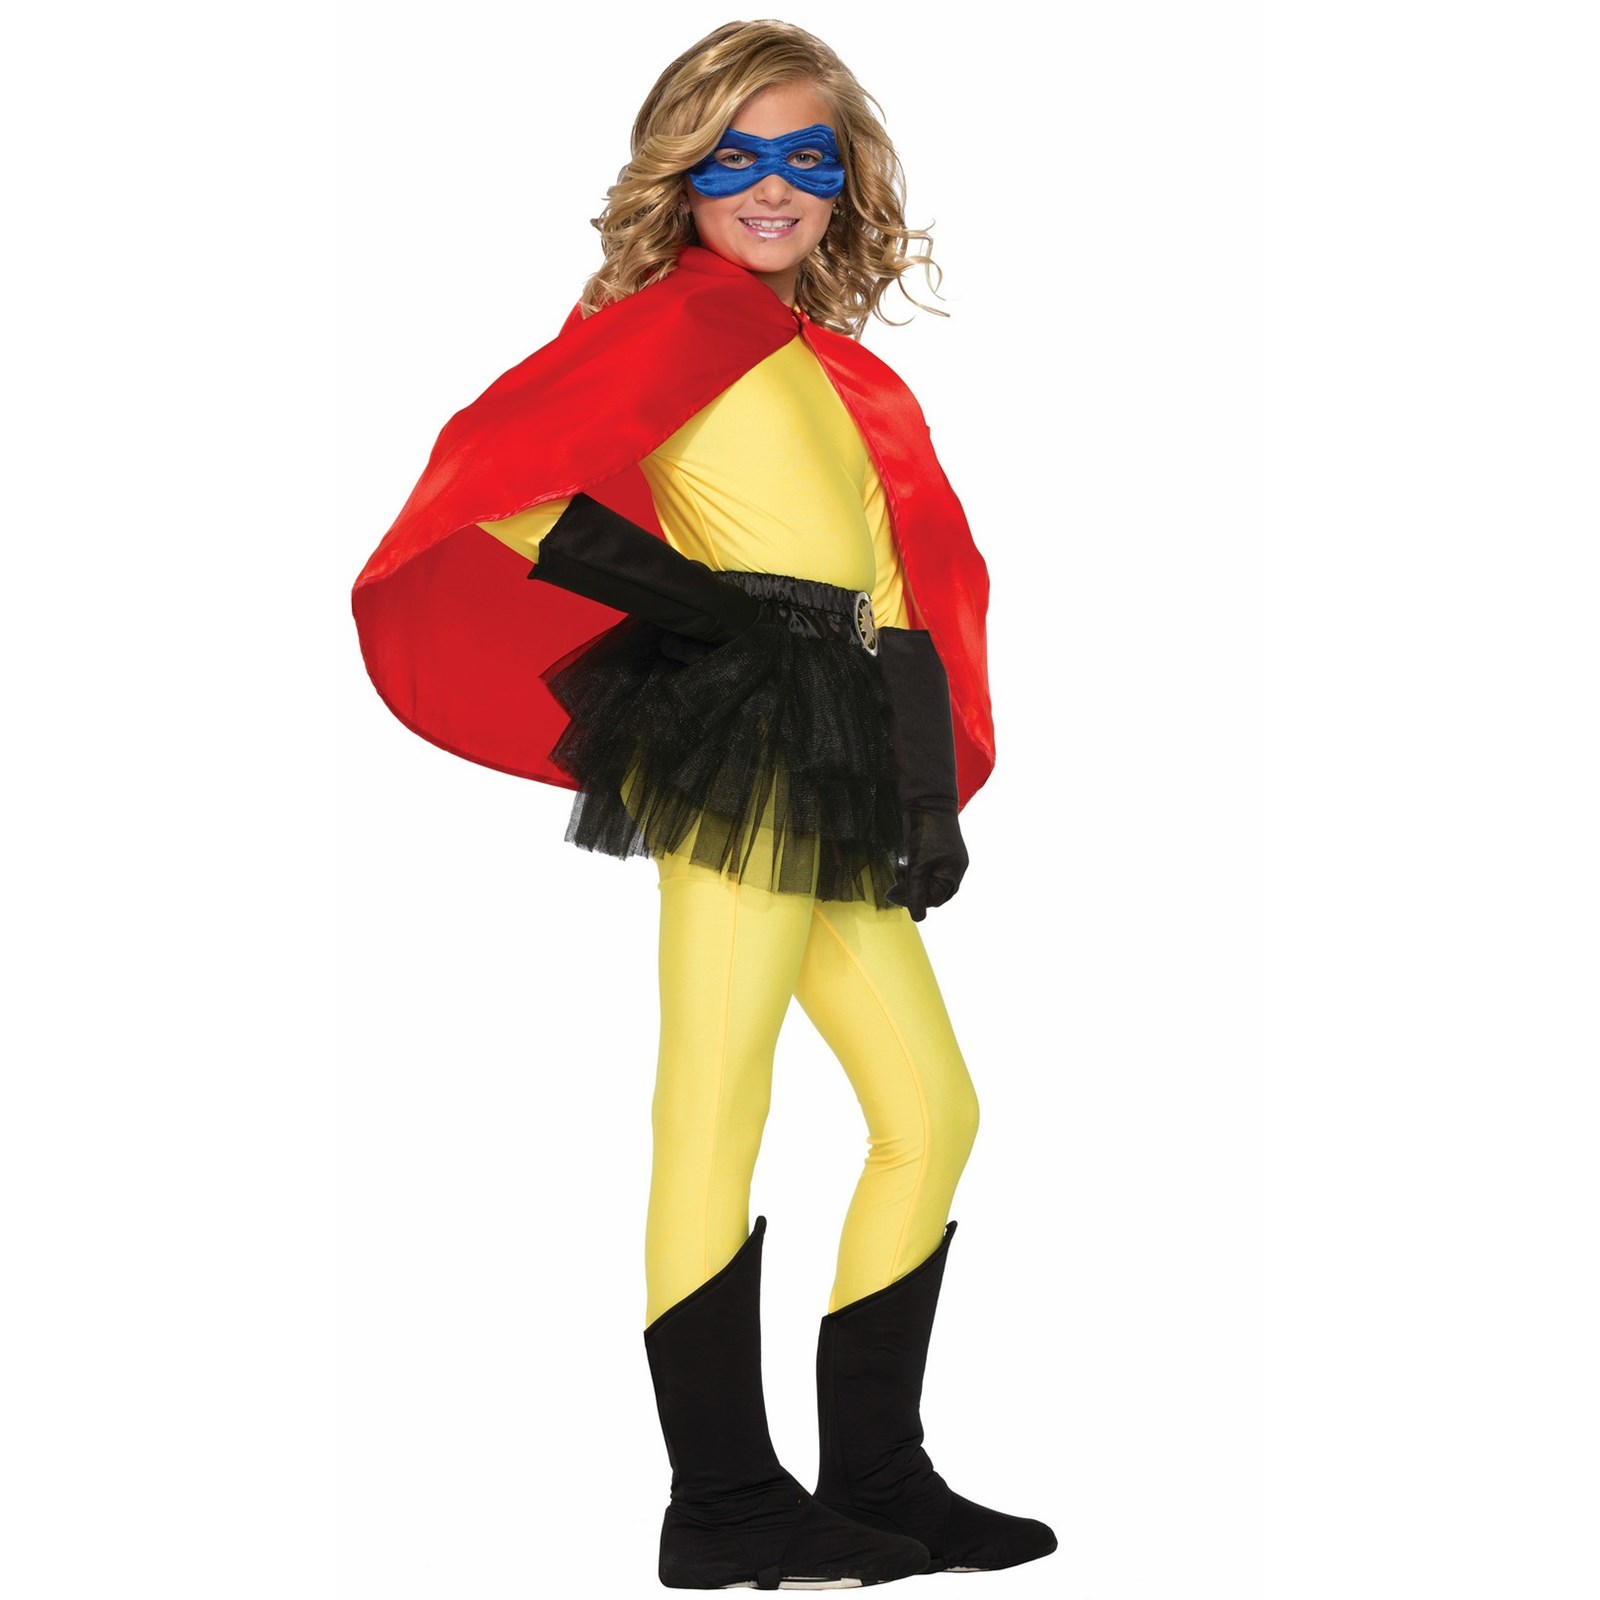 Red Child Cape Halloween Costume Accessory